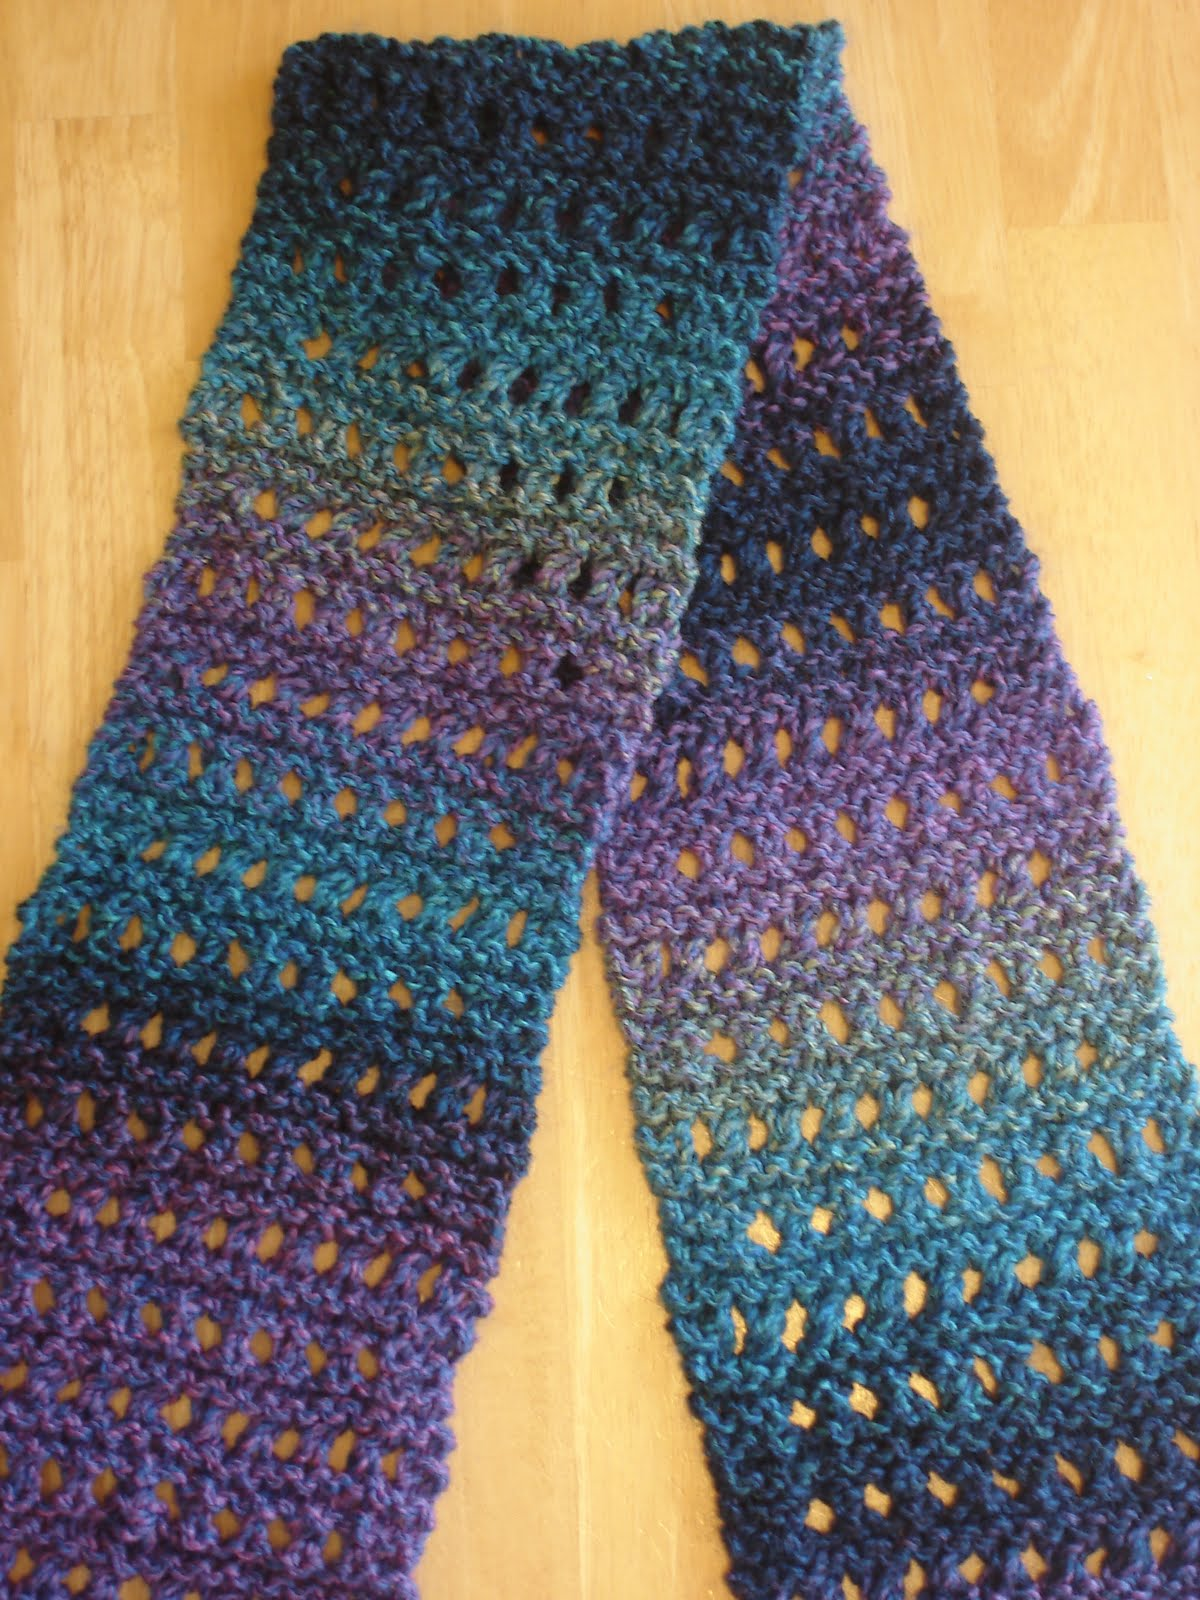 Beginner Knitting Patterns Scarves : Fiber Flux: Free Knitting Pattern: Tweedy Eyelet Scarf!